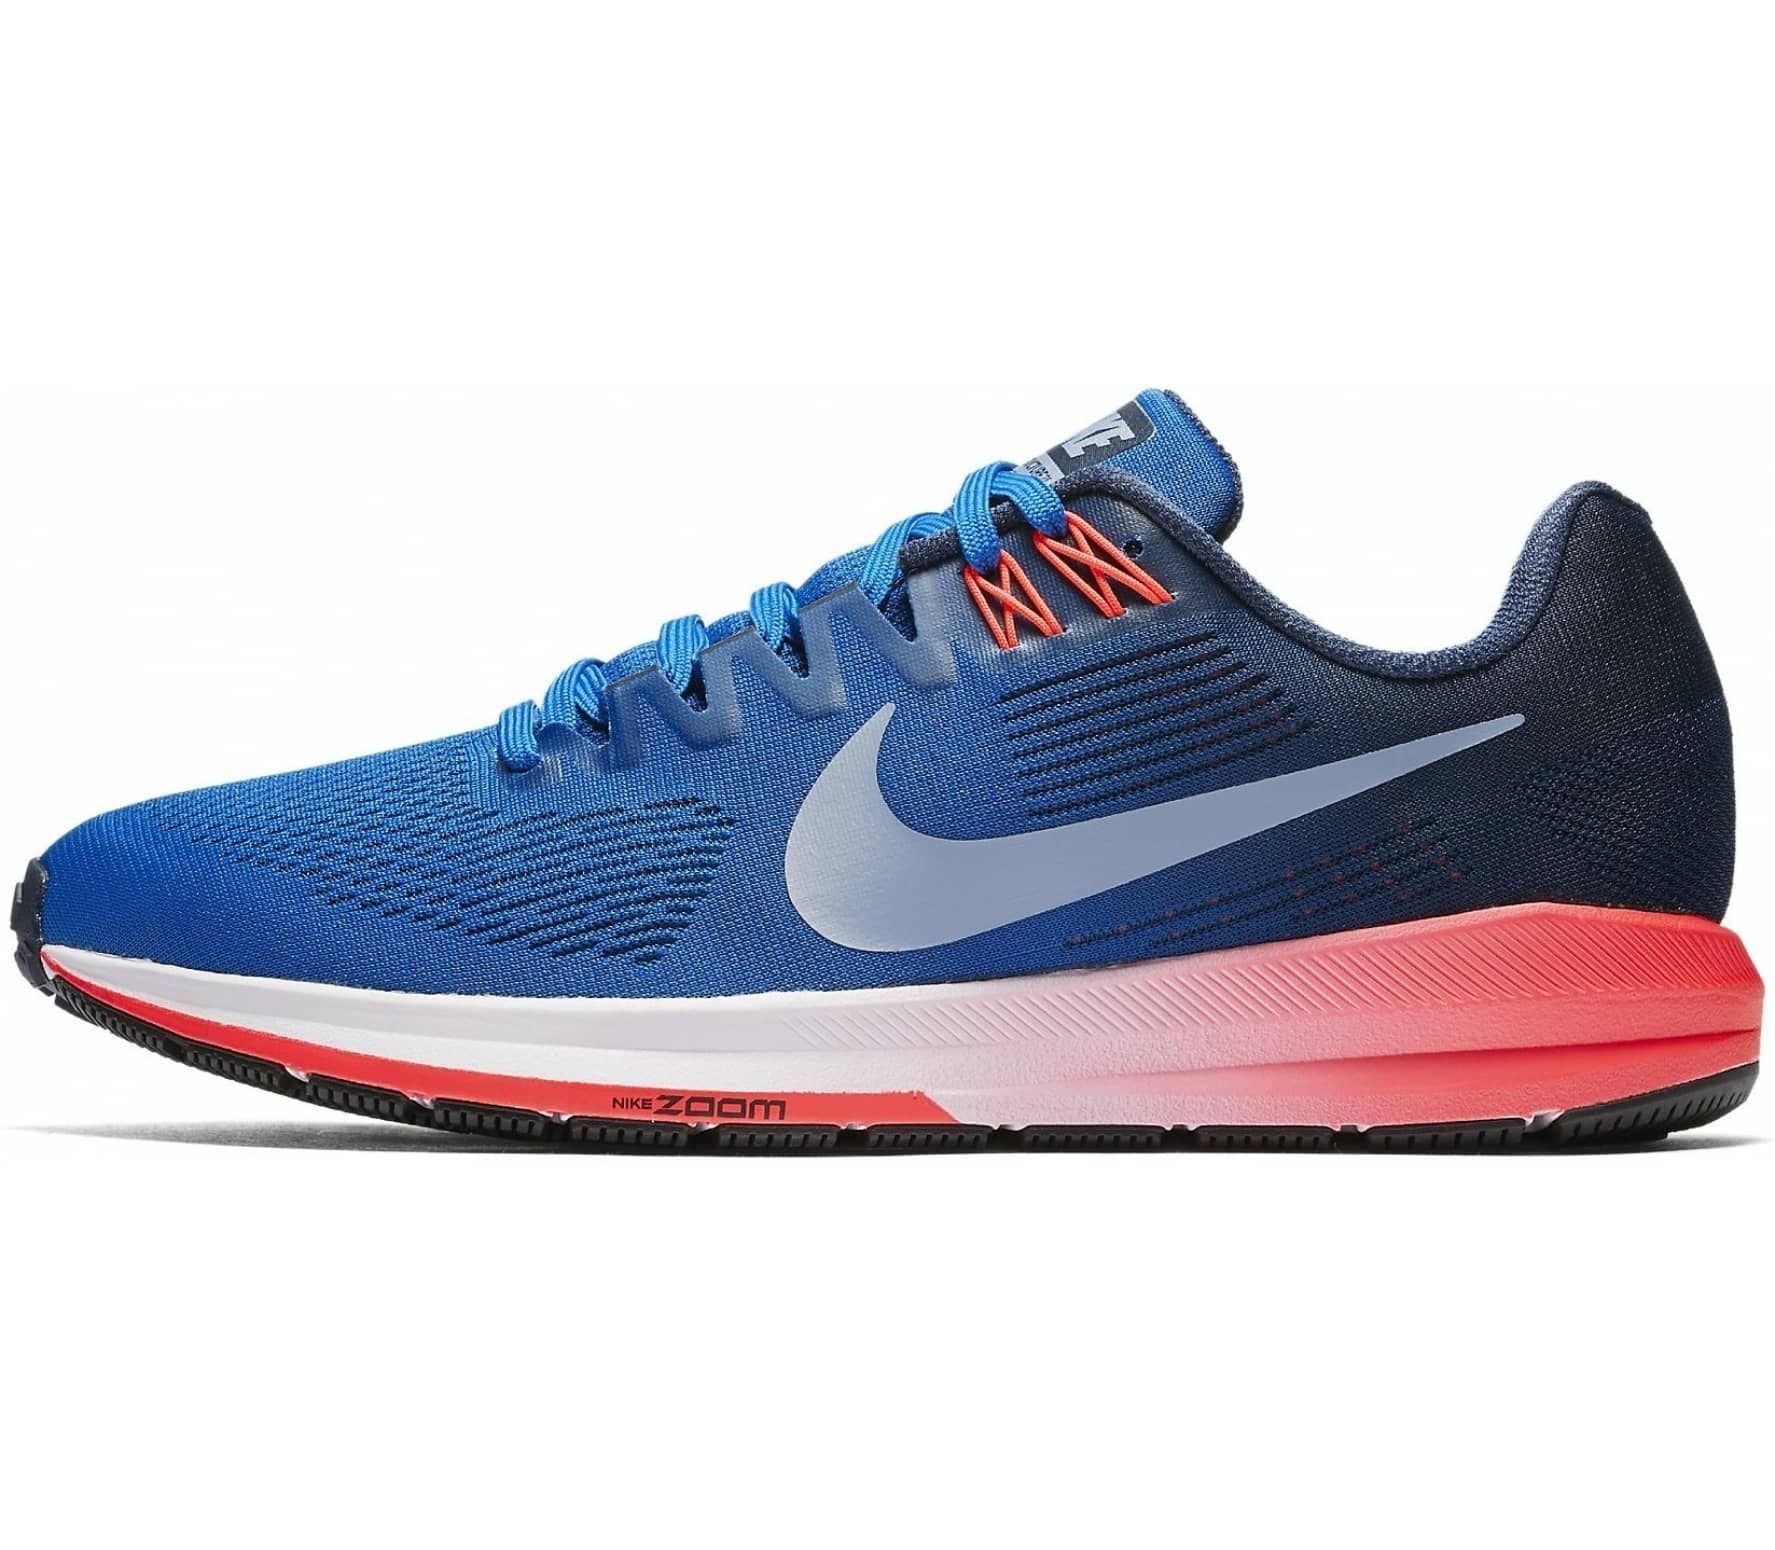 buy online 6c4f6 9bb4c Nike - Air Zoom Structure 21 mens running shoes (bluegrey)